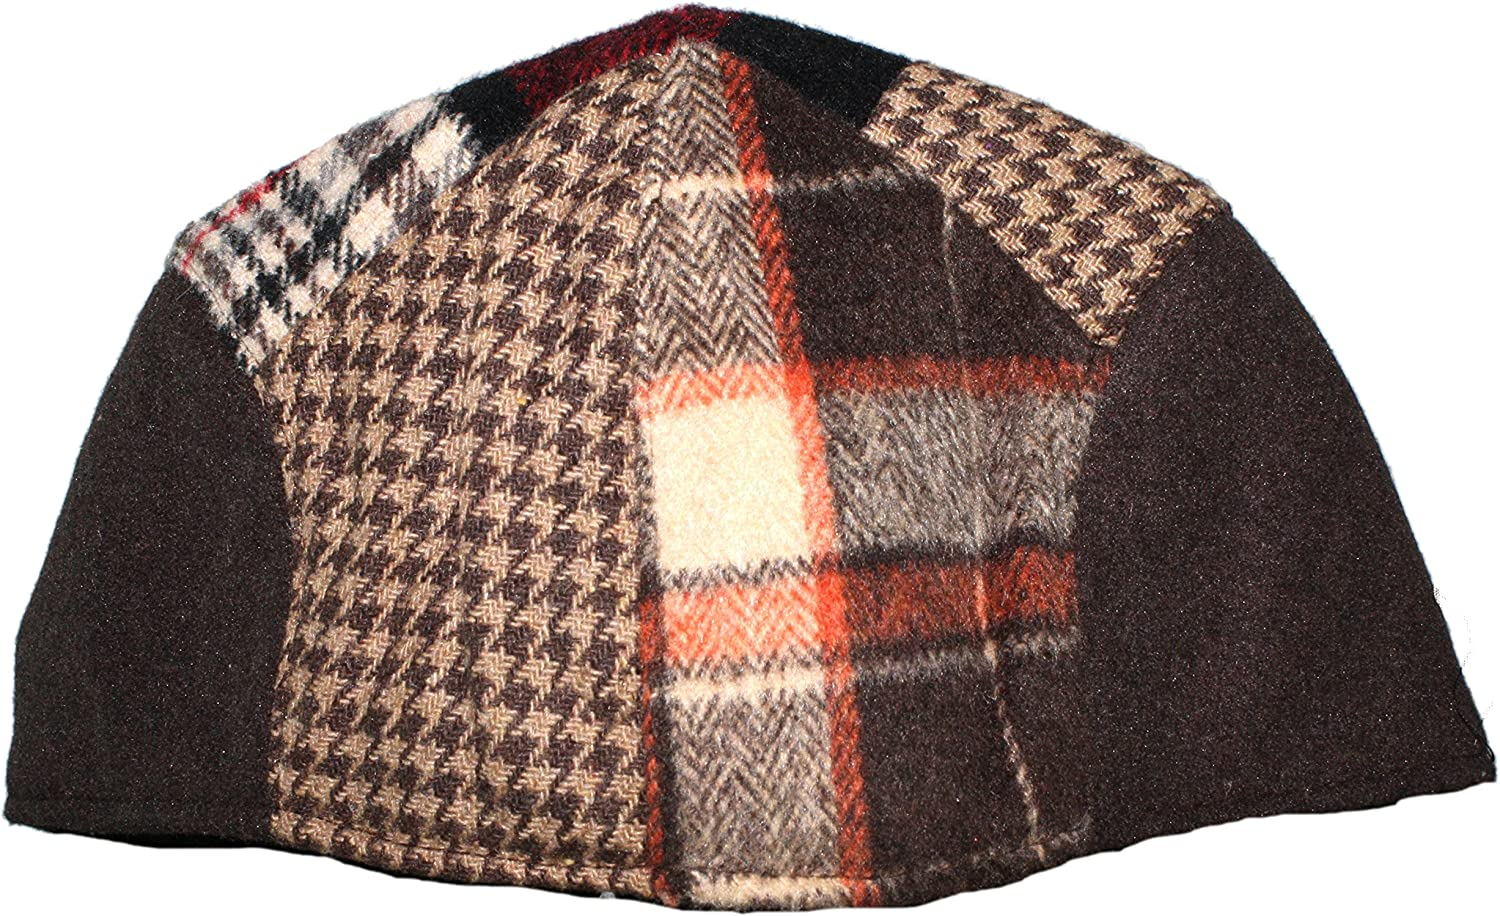 Tweed Patchwork Newsboy Driving Cap with Quilted Lining Ted /& Jack